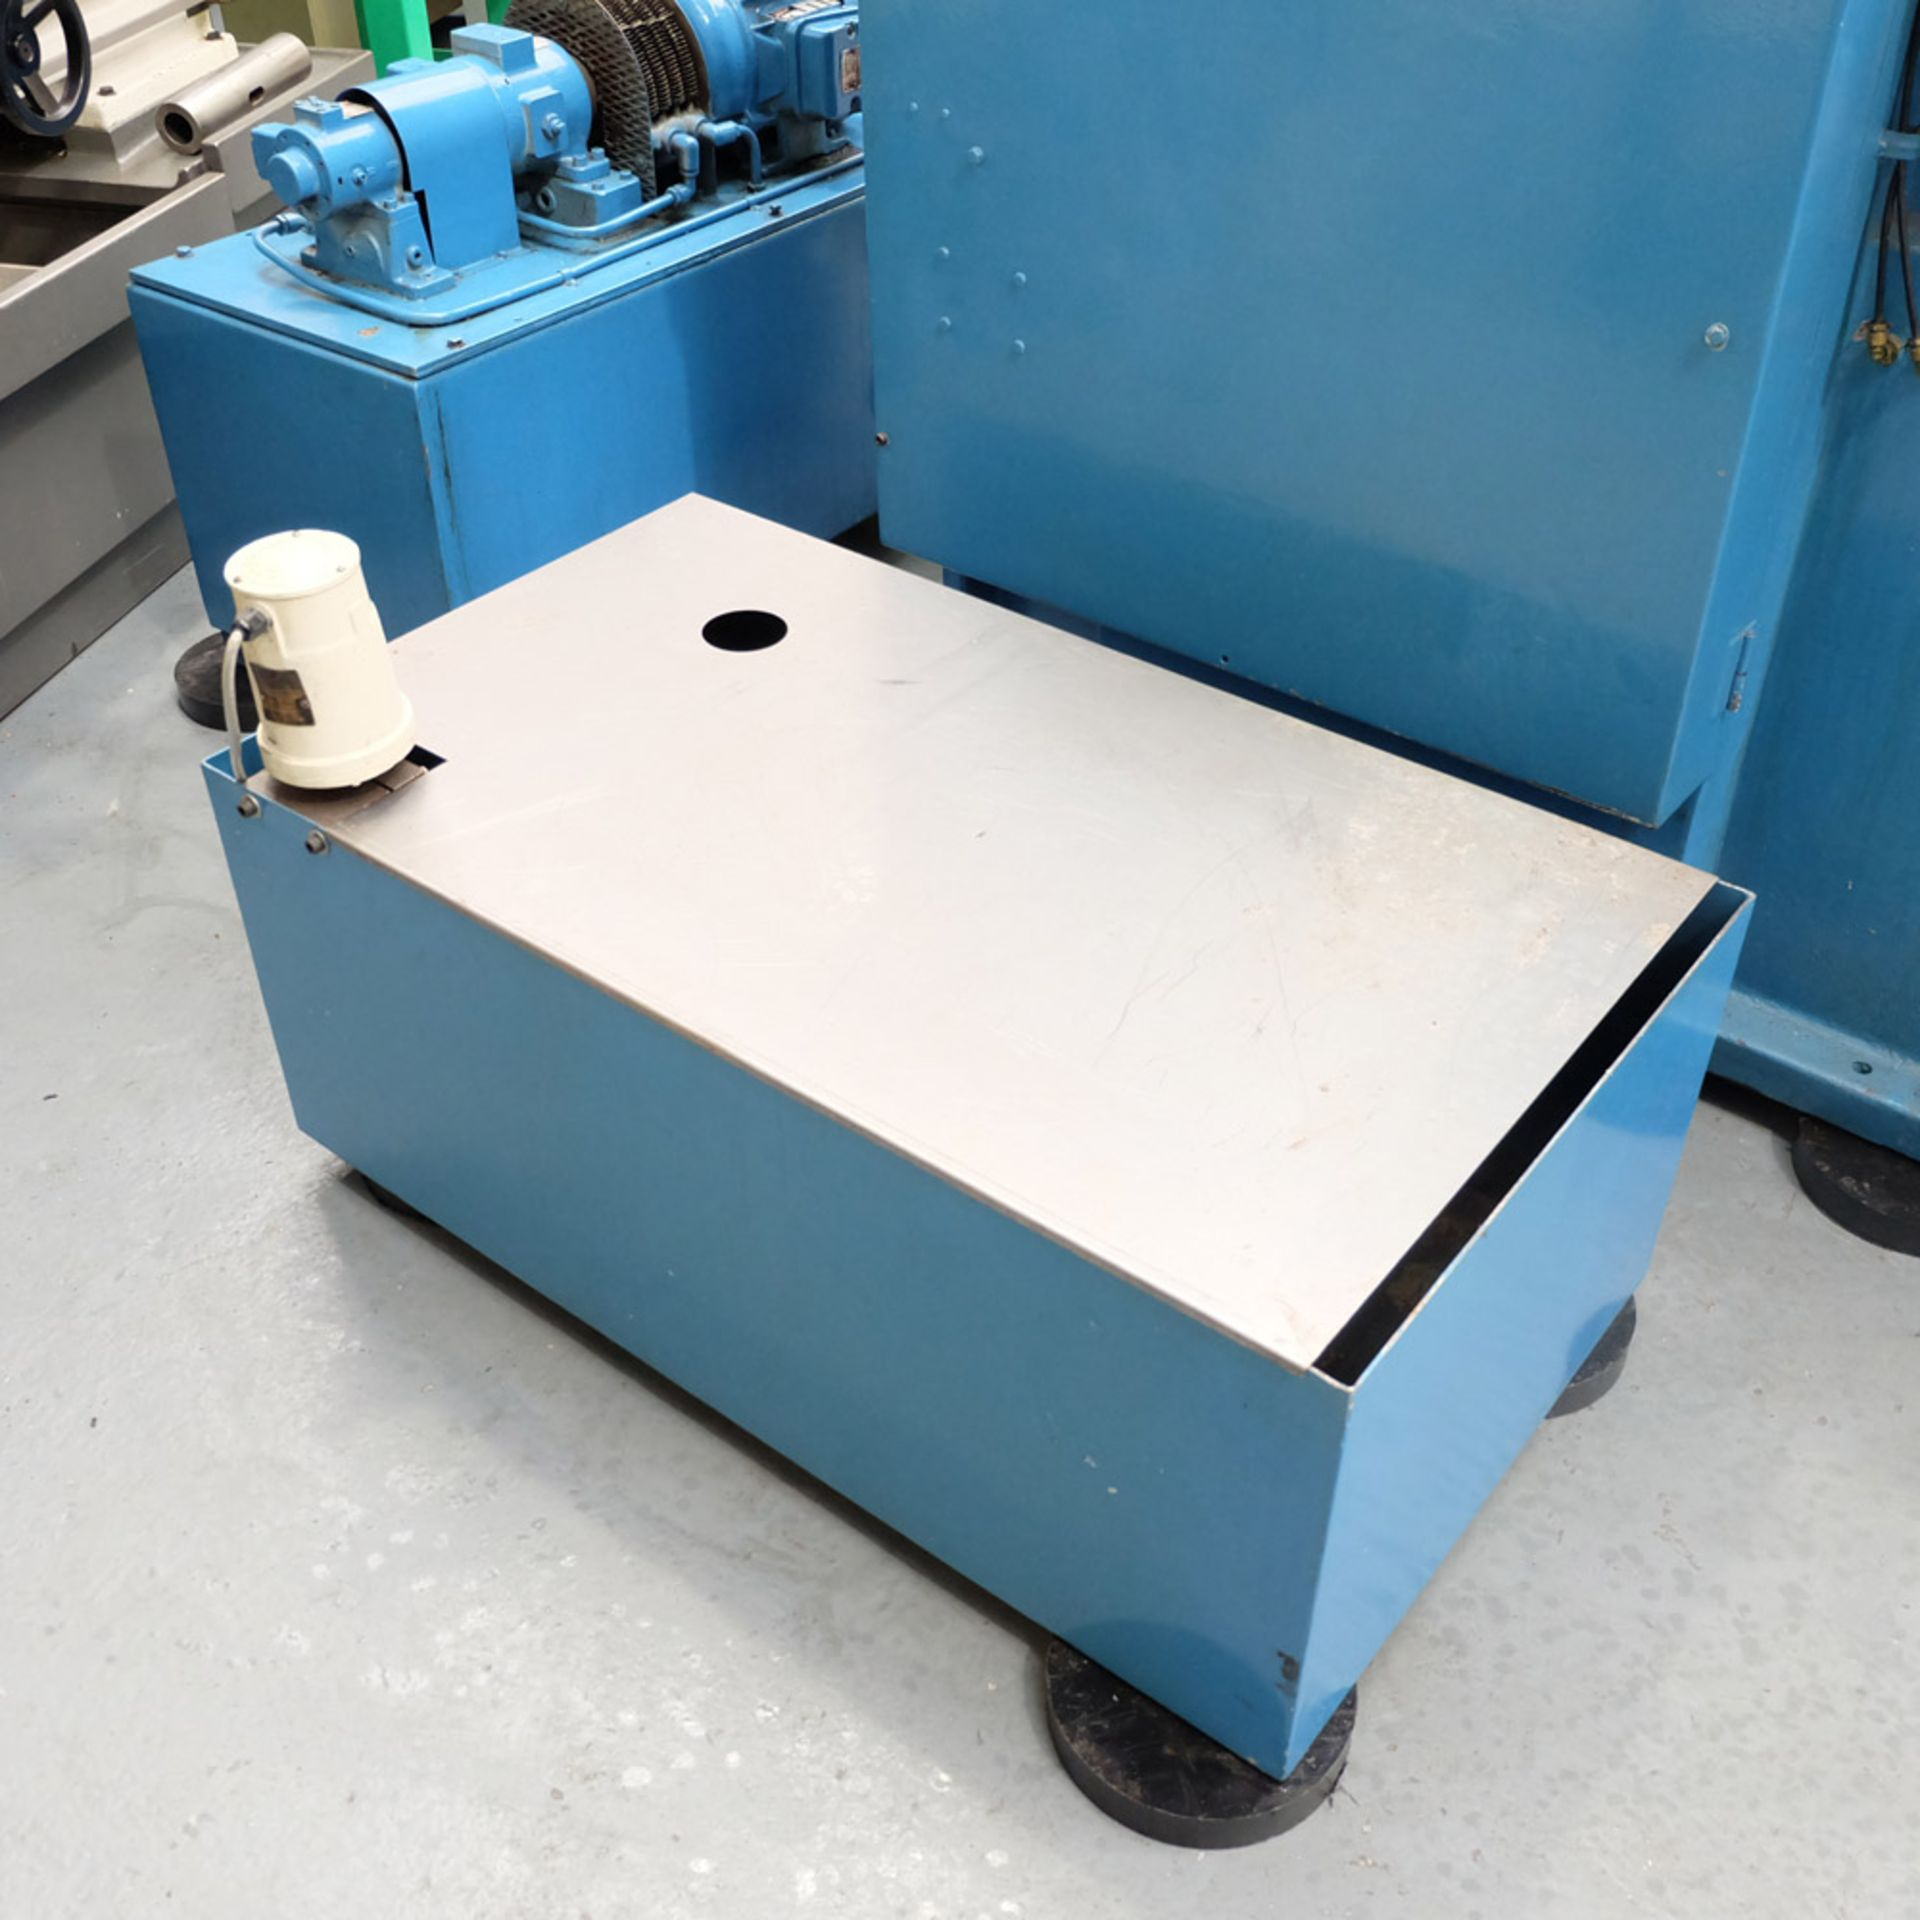 Abwood Type RG1 Tool Room Ring Grinder. Table Size 500mm. Magnetic Chuck 500mm. - Image 8 of 8